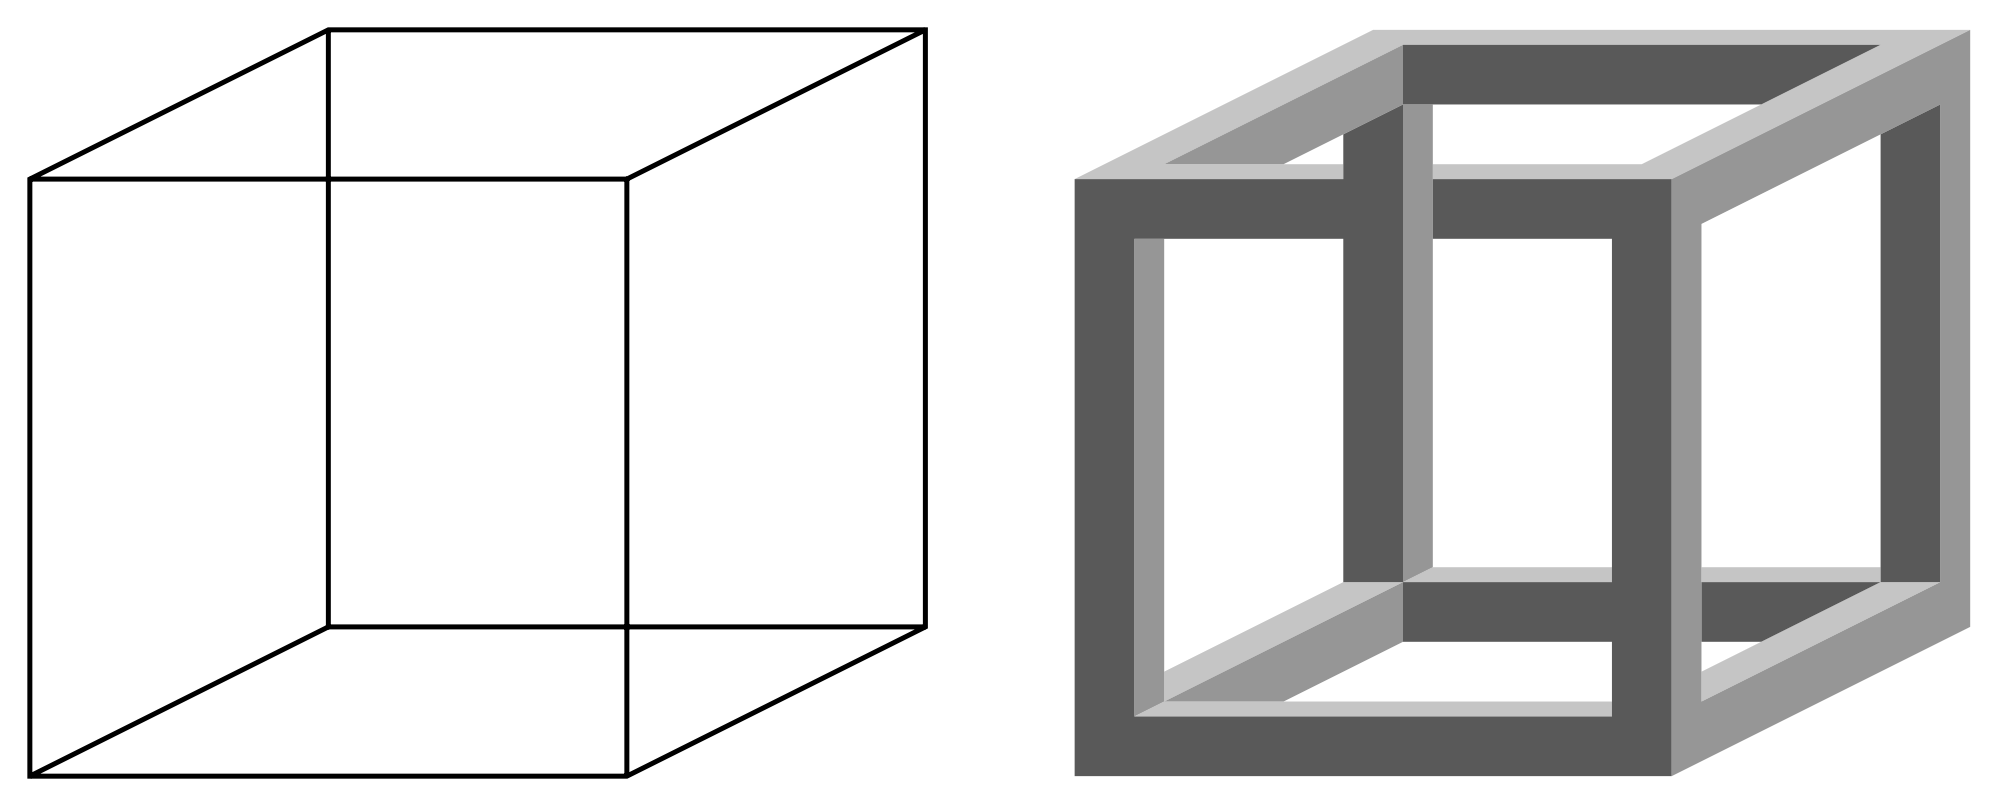 Cube png transparent. File necker and impossible